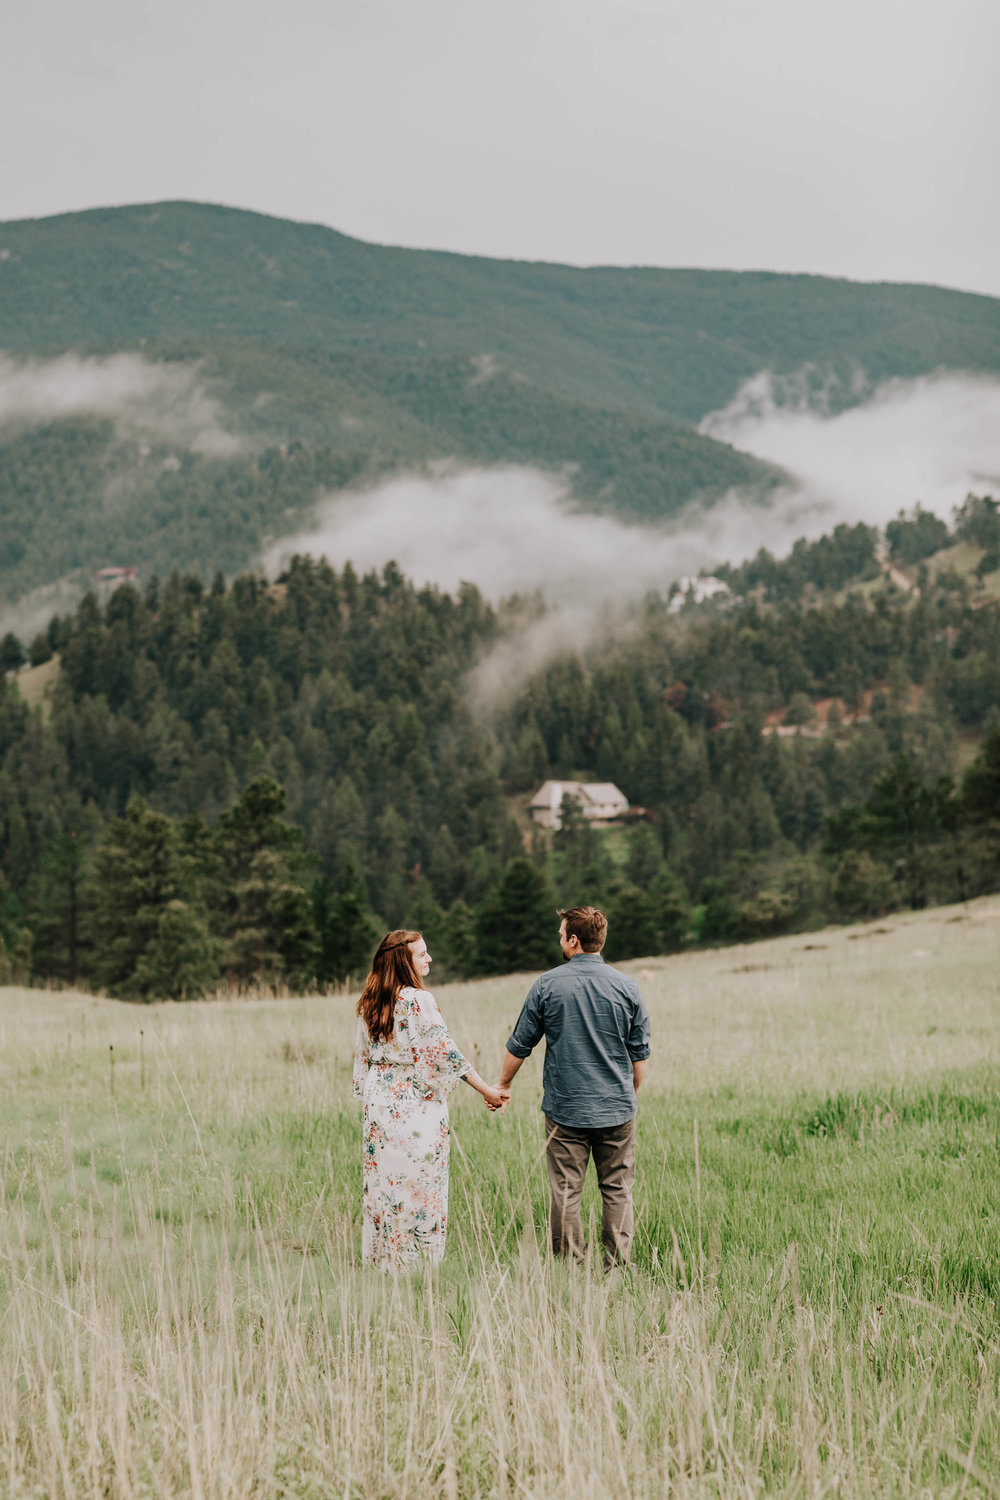 Sheena_Shahangian_Photography_Engagement_Photo_Shoot_Shelby_and_Andrew_Boulder_Colorado-3.jpg